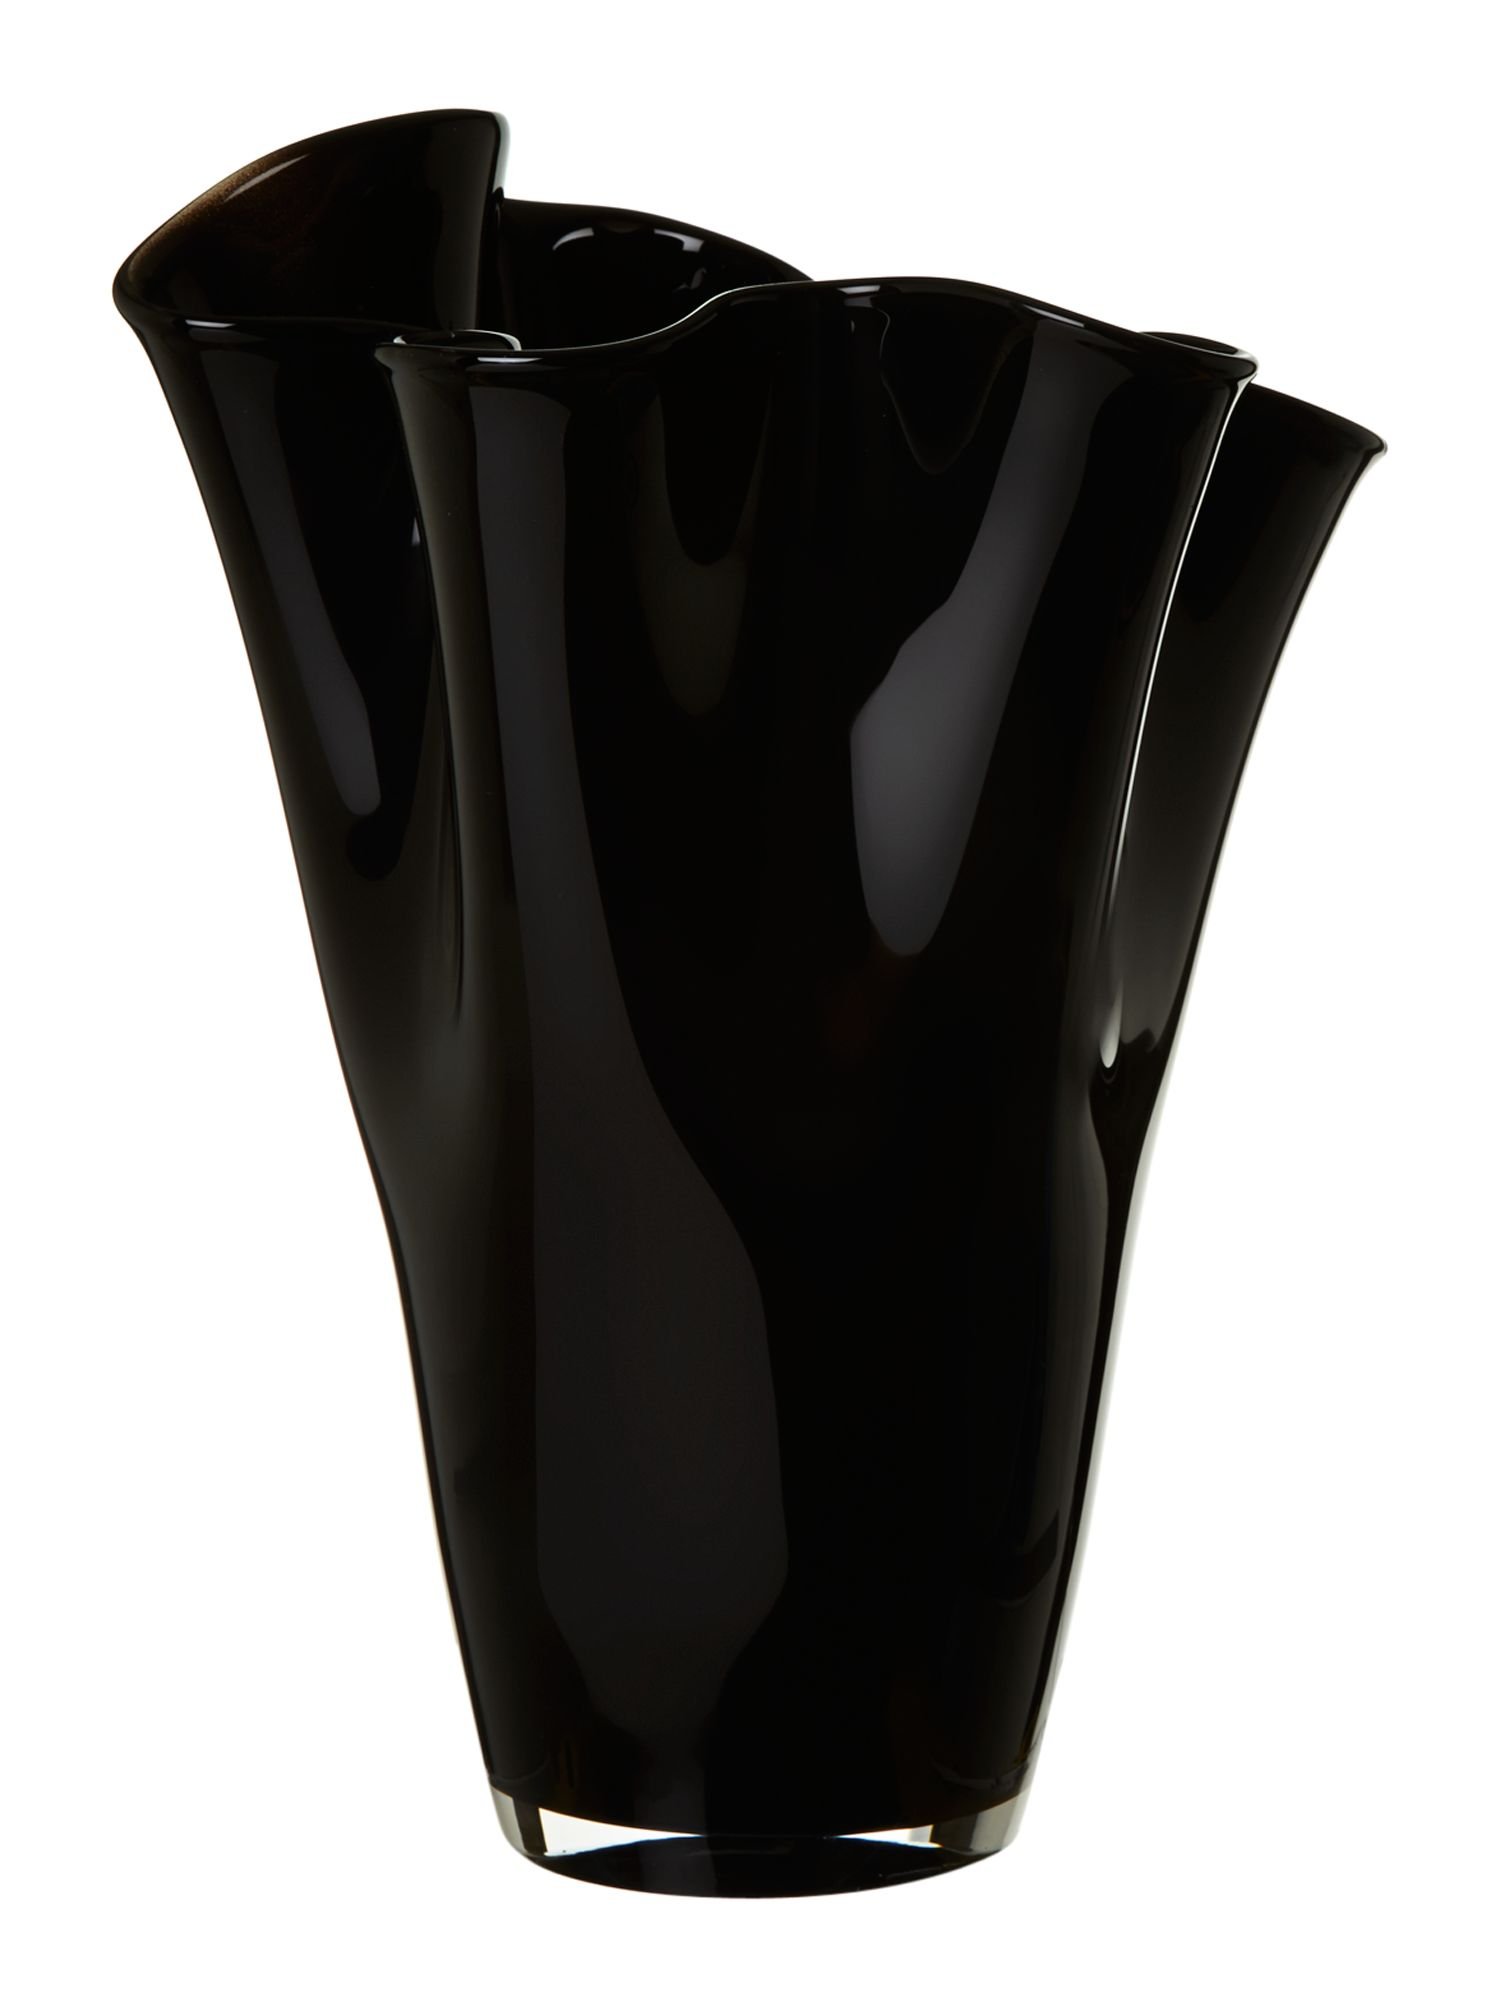 Handkerchief vase, Black